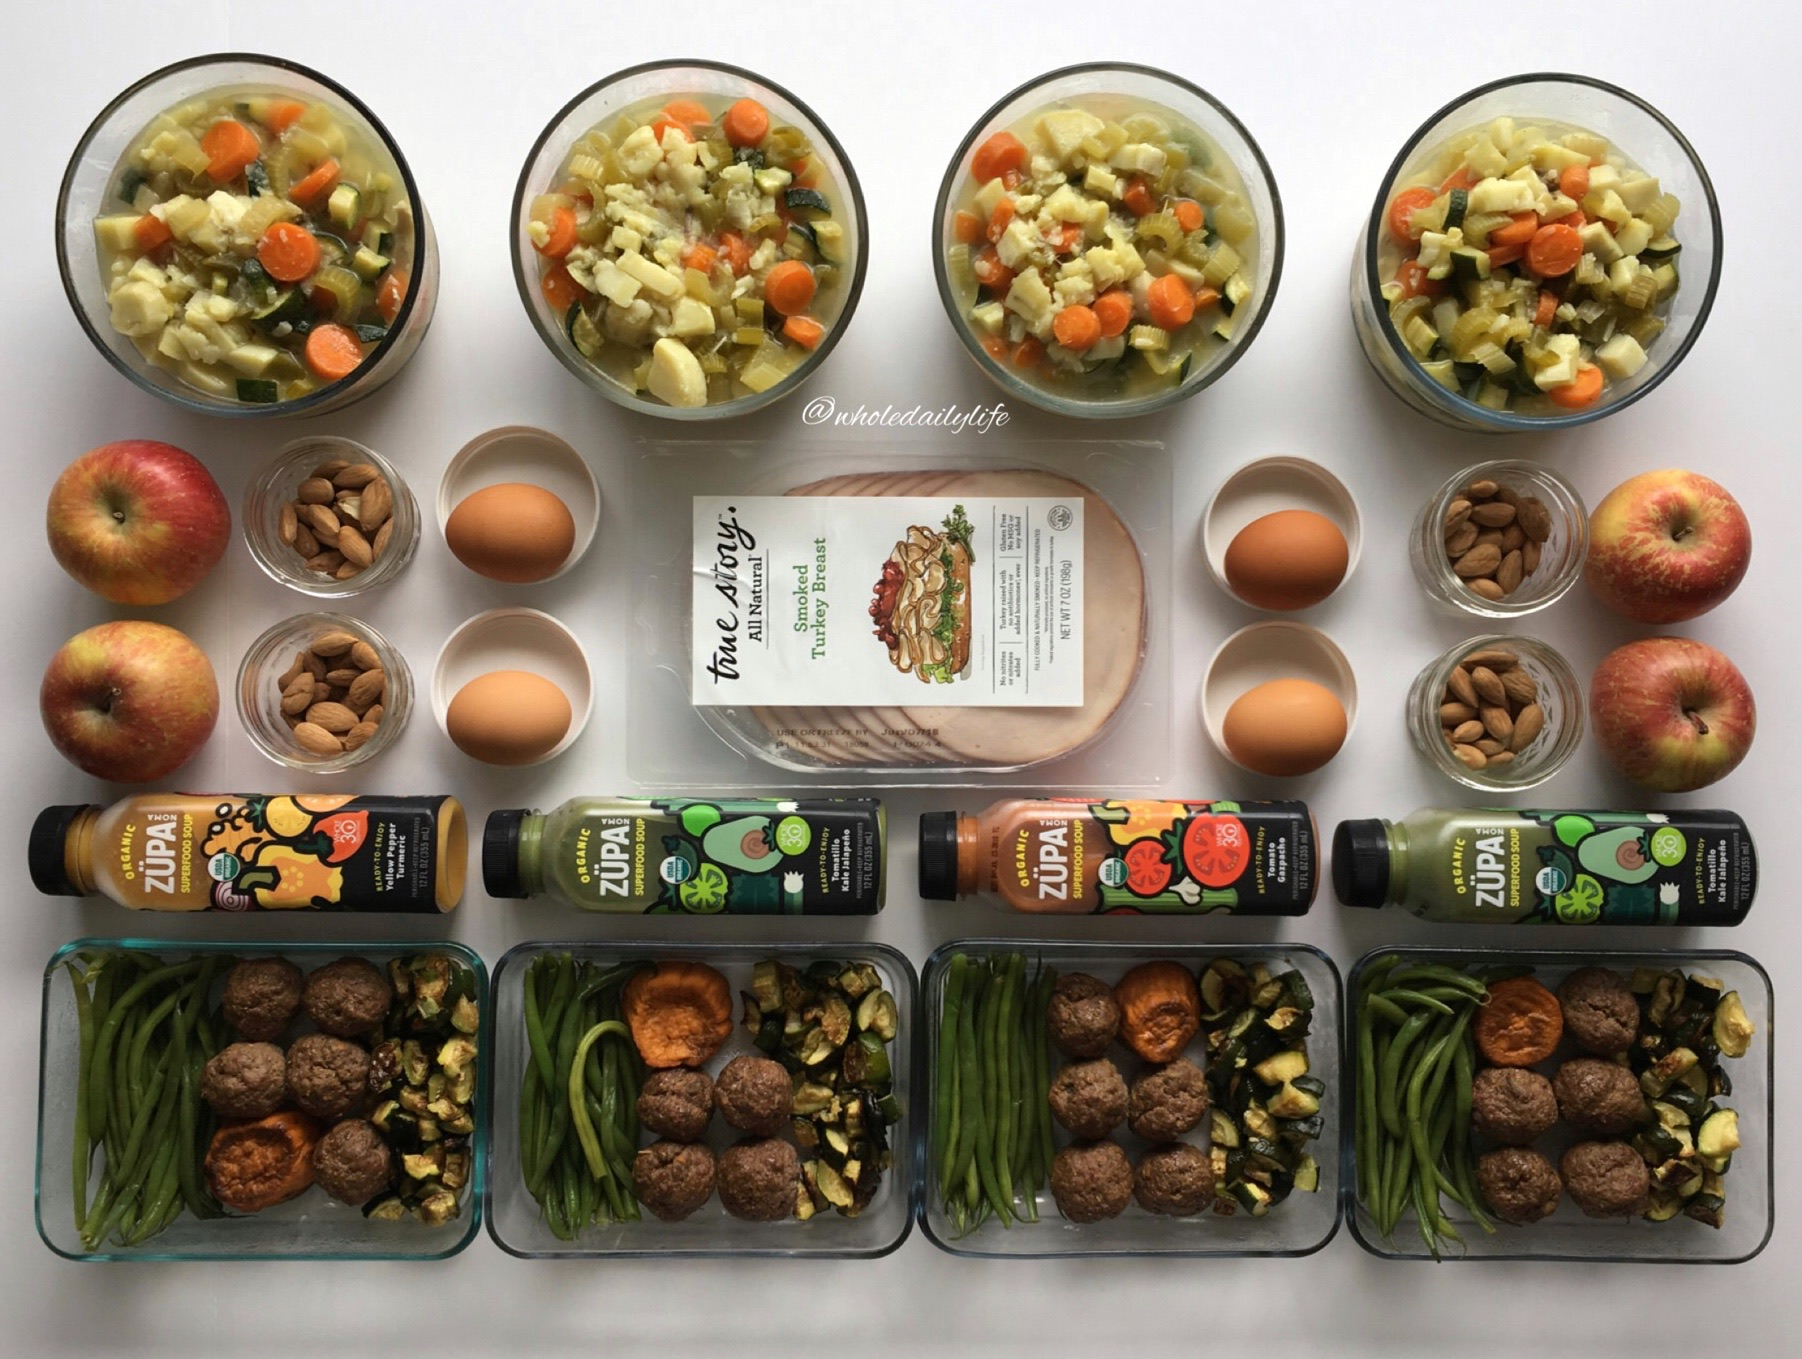 A Week of Whole30 Meals In 2 Hours | Whole Daily Life